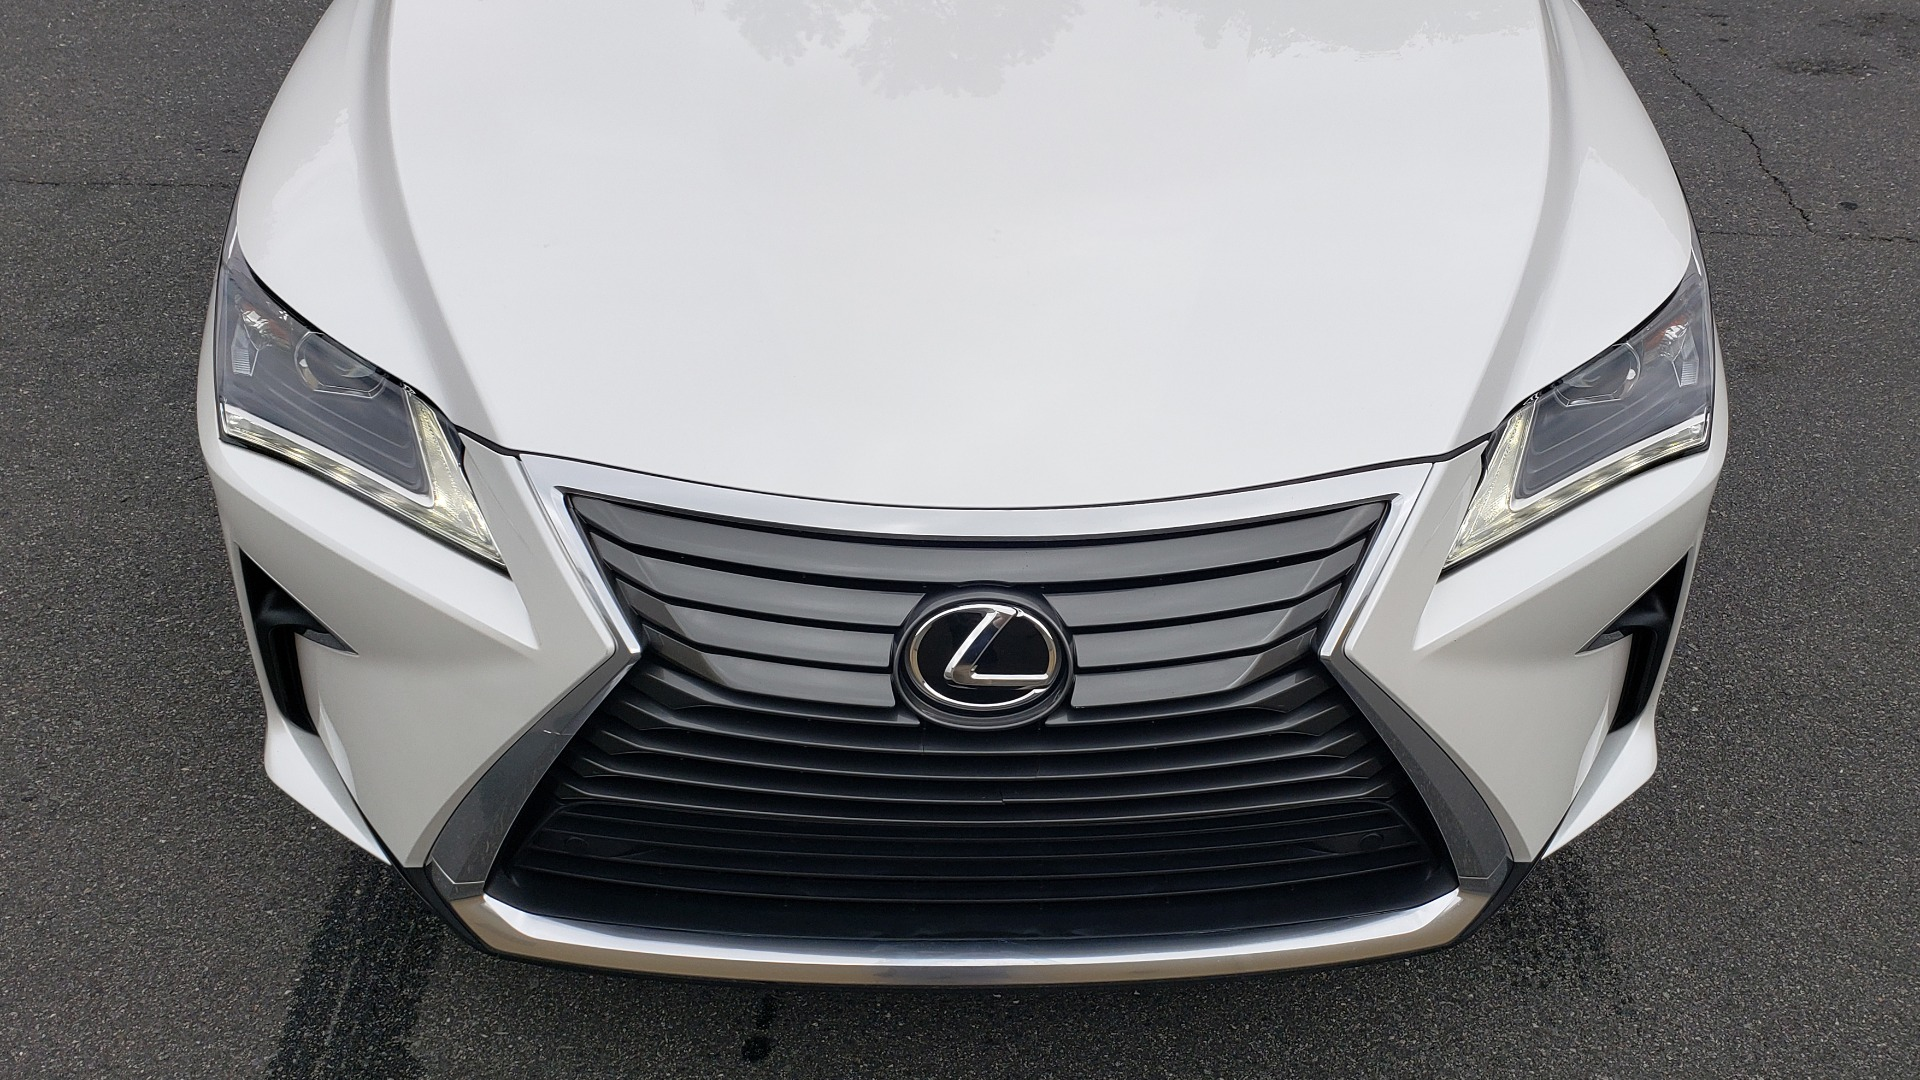 Used 2016 Lexus RX 350 FWD / 4-DR / 3.5L V6 / 8-SPD AUTO / LEATHER / REARVIEW for sale Sold at Formula Imports in Charlotte NC 28227 23